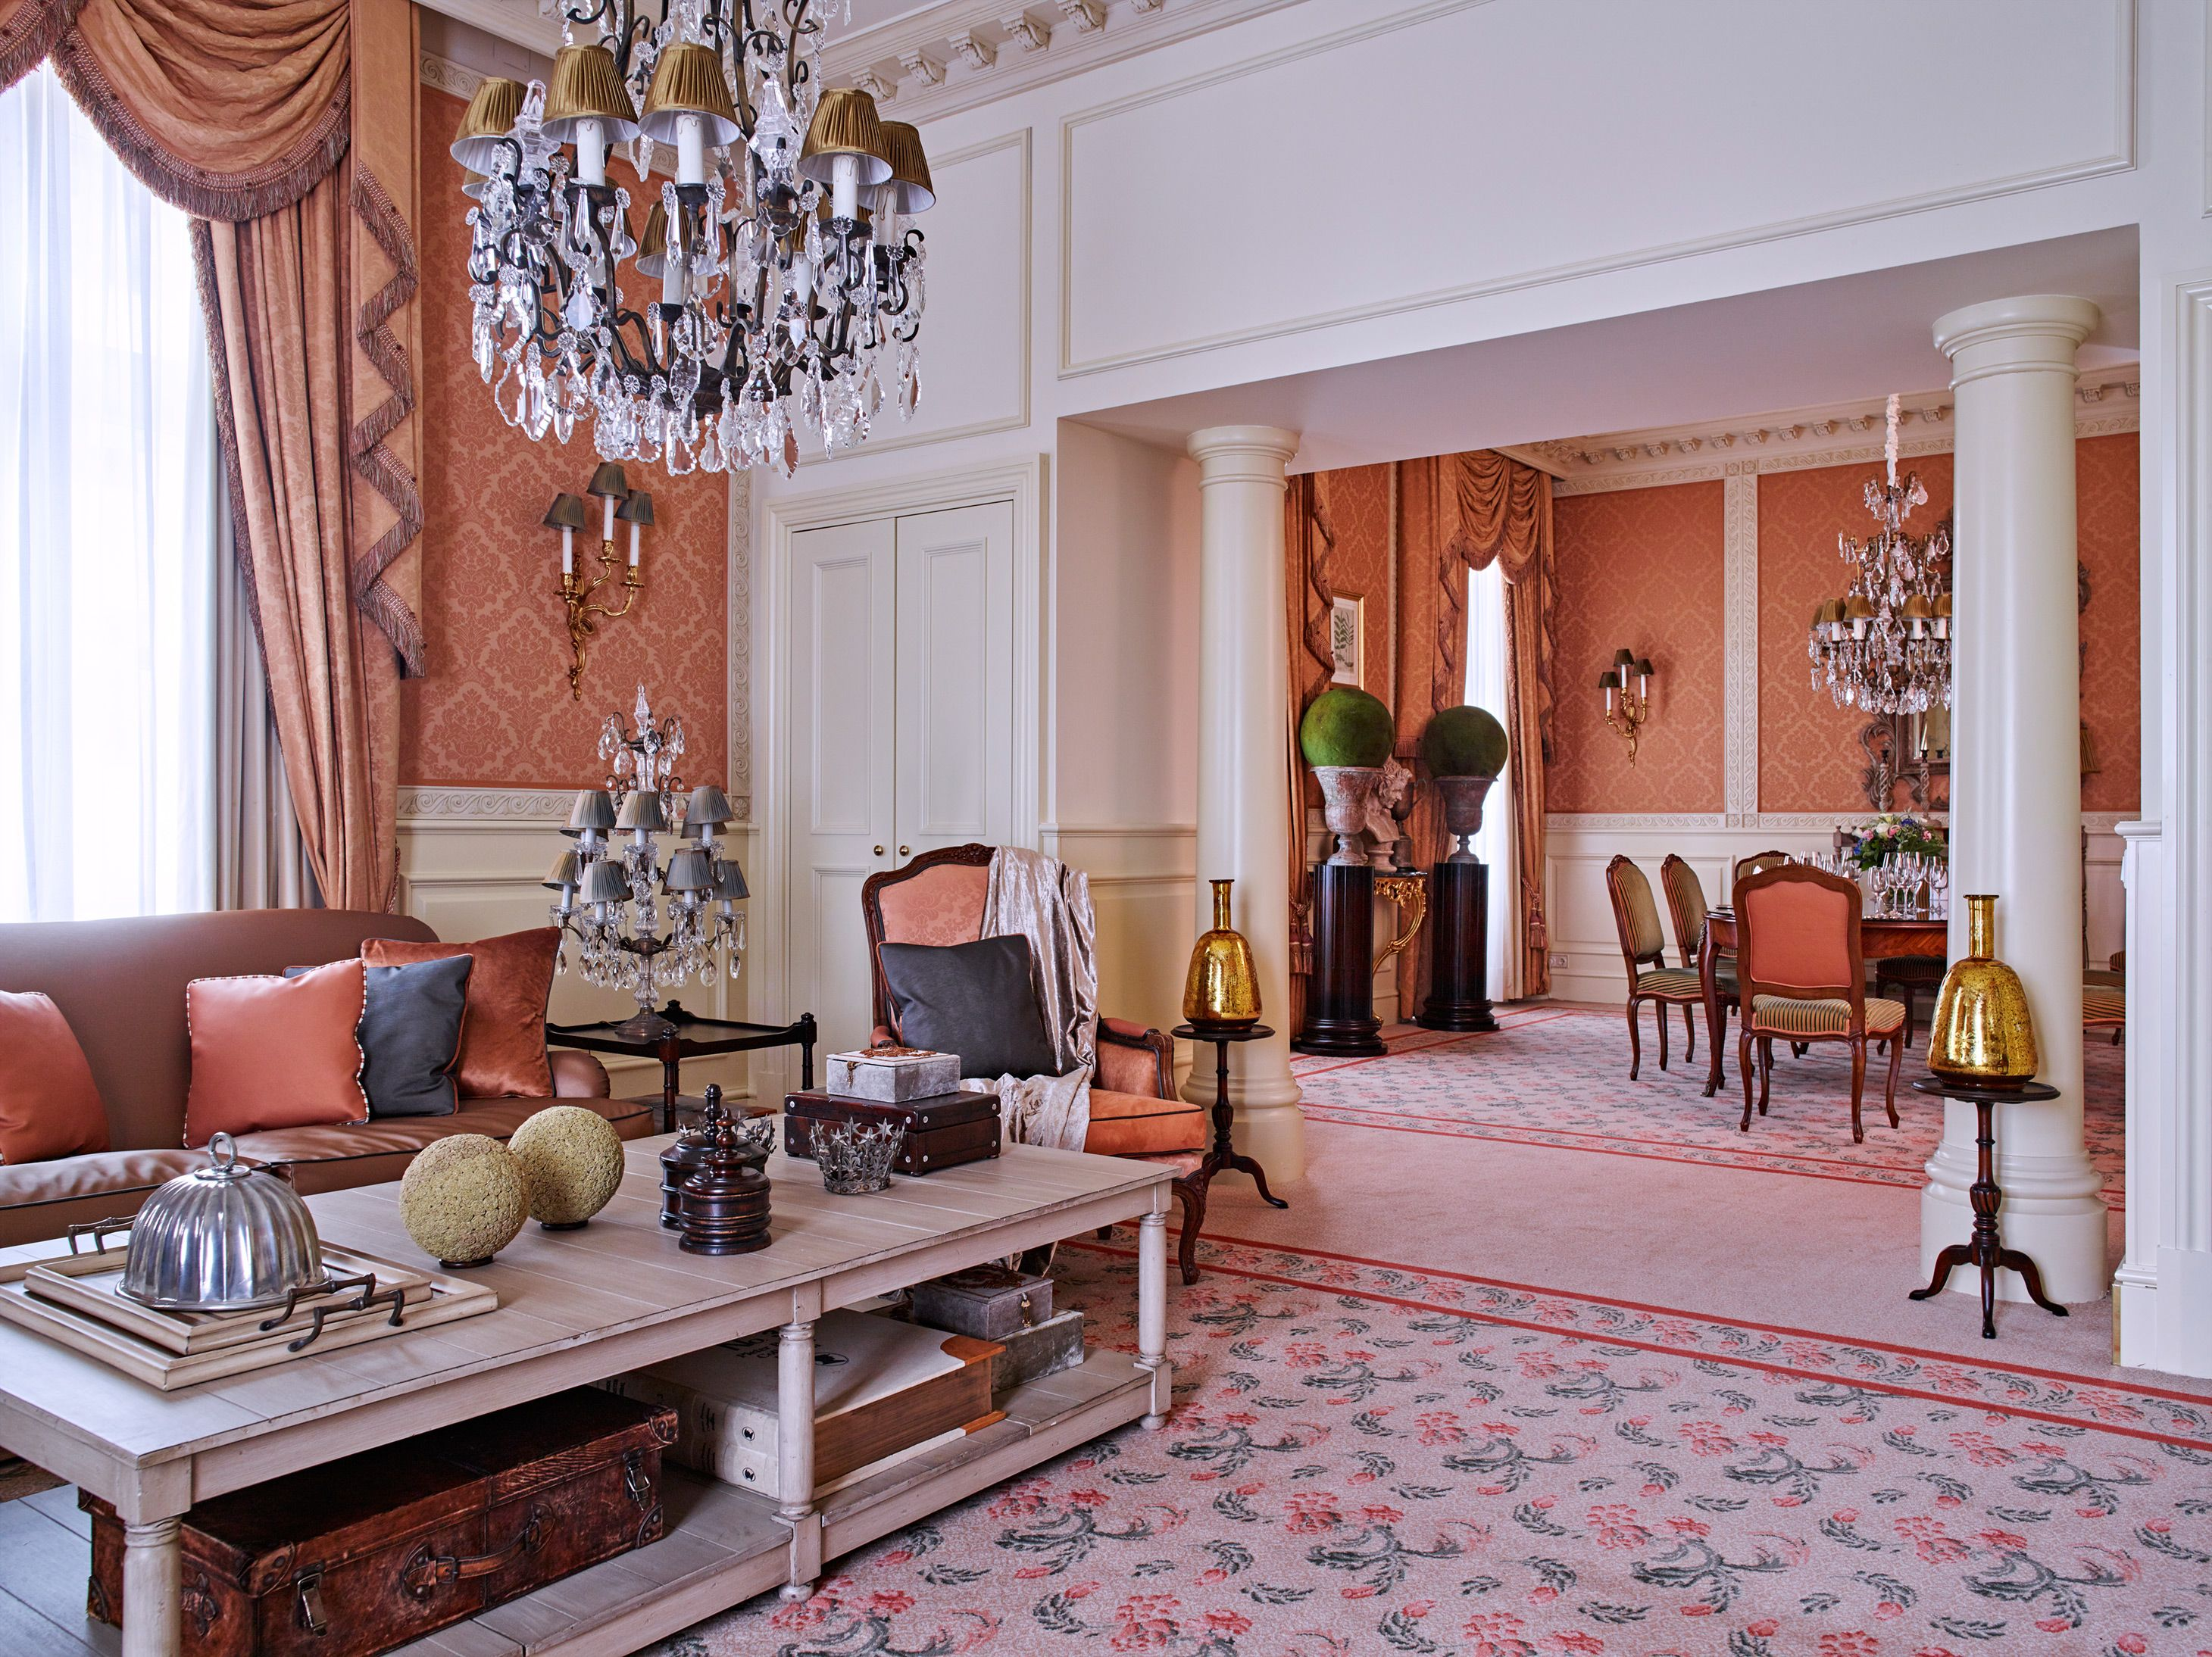 Grand Hotel Wien Luxpitality Luxurious Rooms Luxury Furniture Grand Hotel